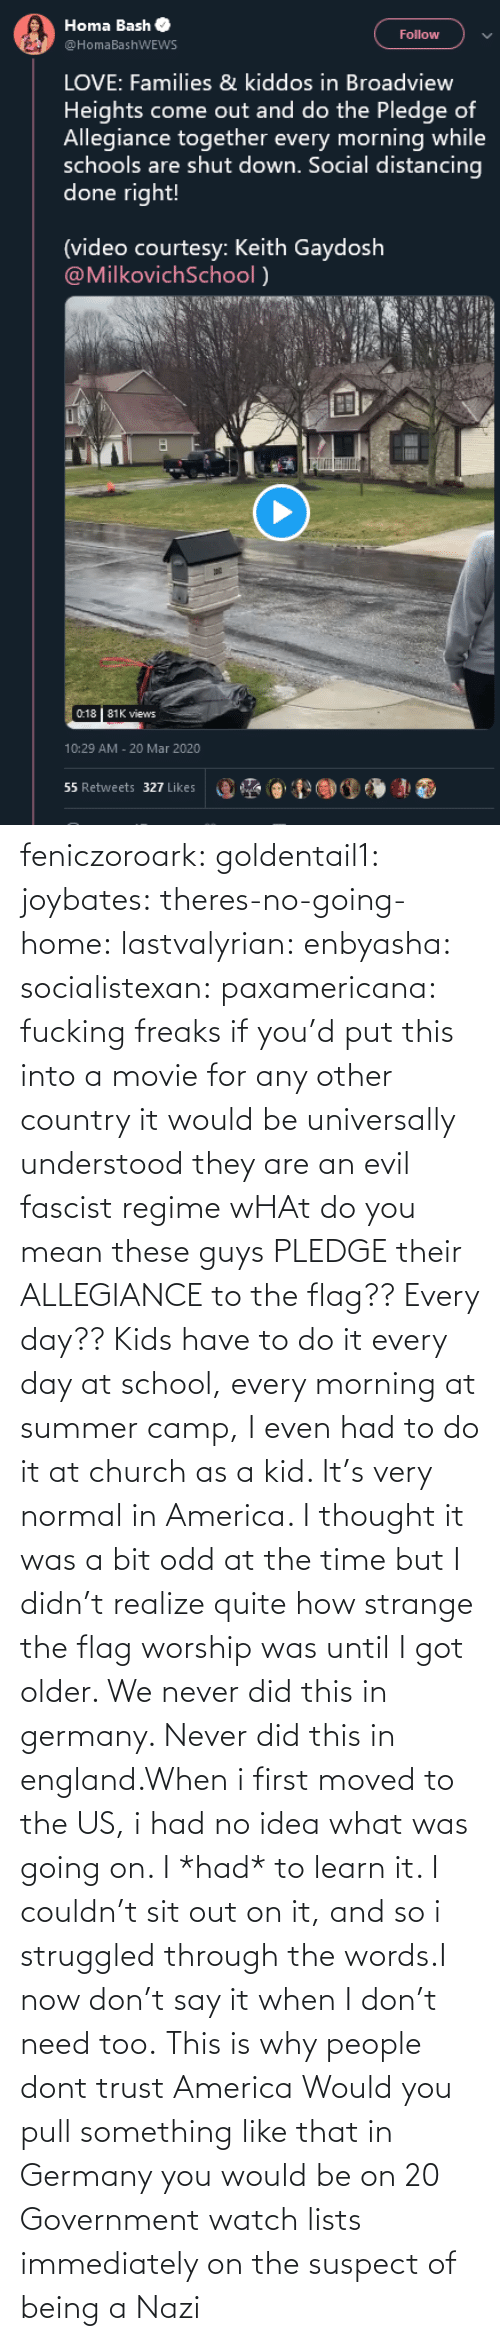 This Is Why: feniczoroark:  goldentail1:  joybates:  theres-no-going-home:  lastvalyrian:  enbyasha:  socialistexan:  paxamericana: fucking freaks       if you'd put this into a movie for any other country it would be universally understood they are an evil fascist regime    wHAt do you mean these guys PLEDGE their ALLEGIANCE to the flag?? Every day??   Kids have to do it every day at school, every morning at summer camp, I even had to do it at church as a kid. It's very normal in America. I thought it was a bit odd at the time but I didn't realize quite how strange the flag worship was until I got older.    We never did this in germany. Never did this in england.When i first moved to the US, i had no idea what was going on. I *had* to learn it. I couldn't sit out on it, and so i struggled through the words.I now don't say it when I don't need too.   This is why people dont trust America    Would you pull something like that in Germany you would be on 20 Government watch lists immediately on the suspect of being a Nazi